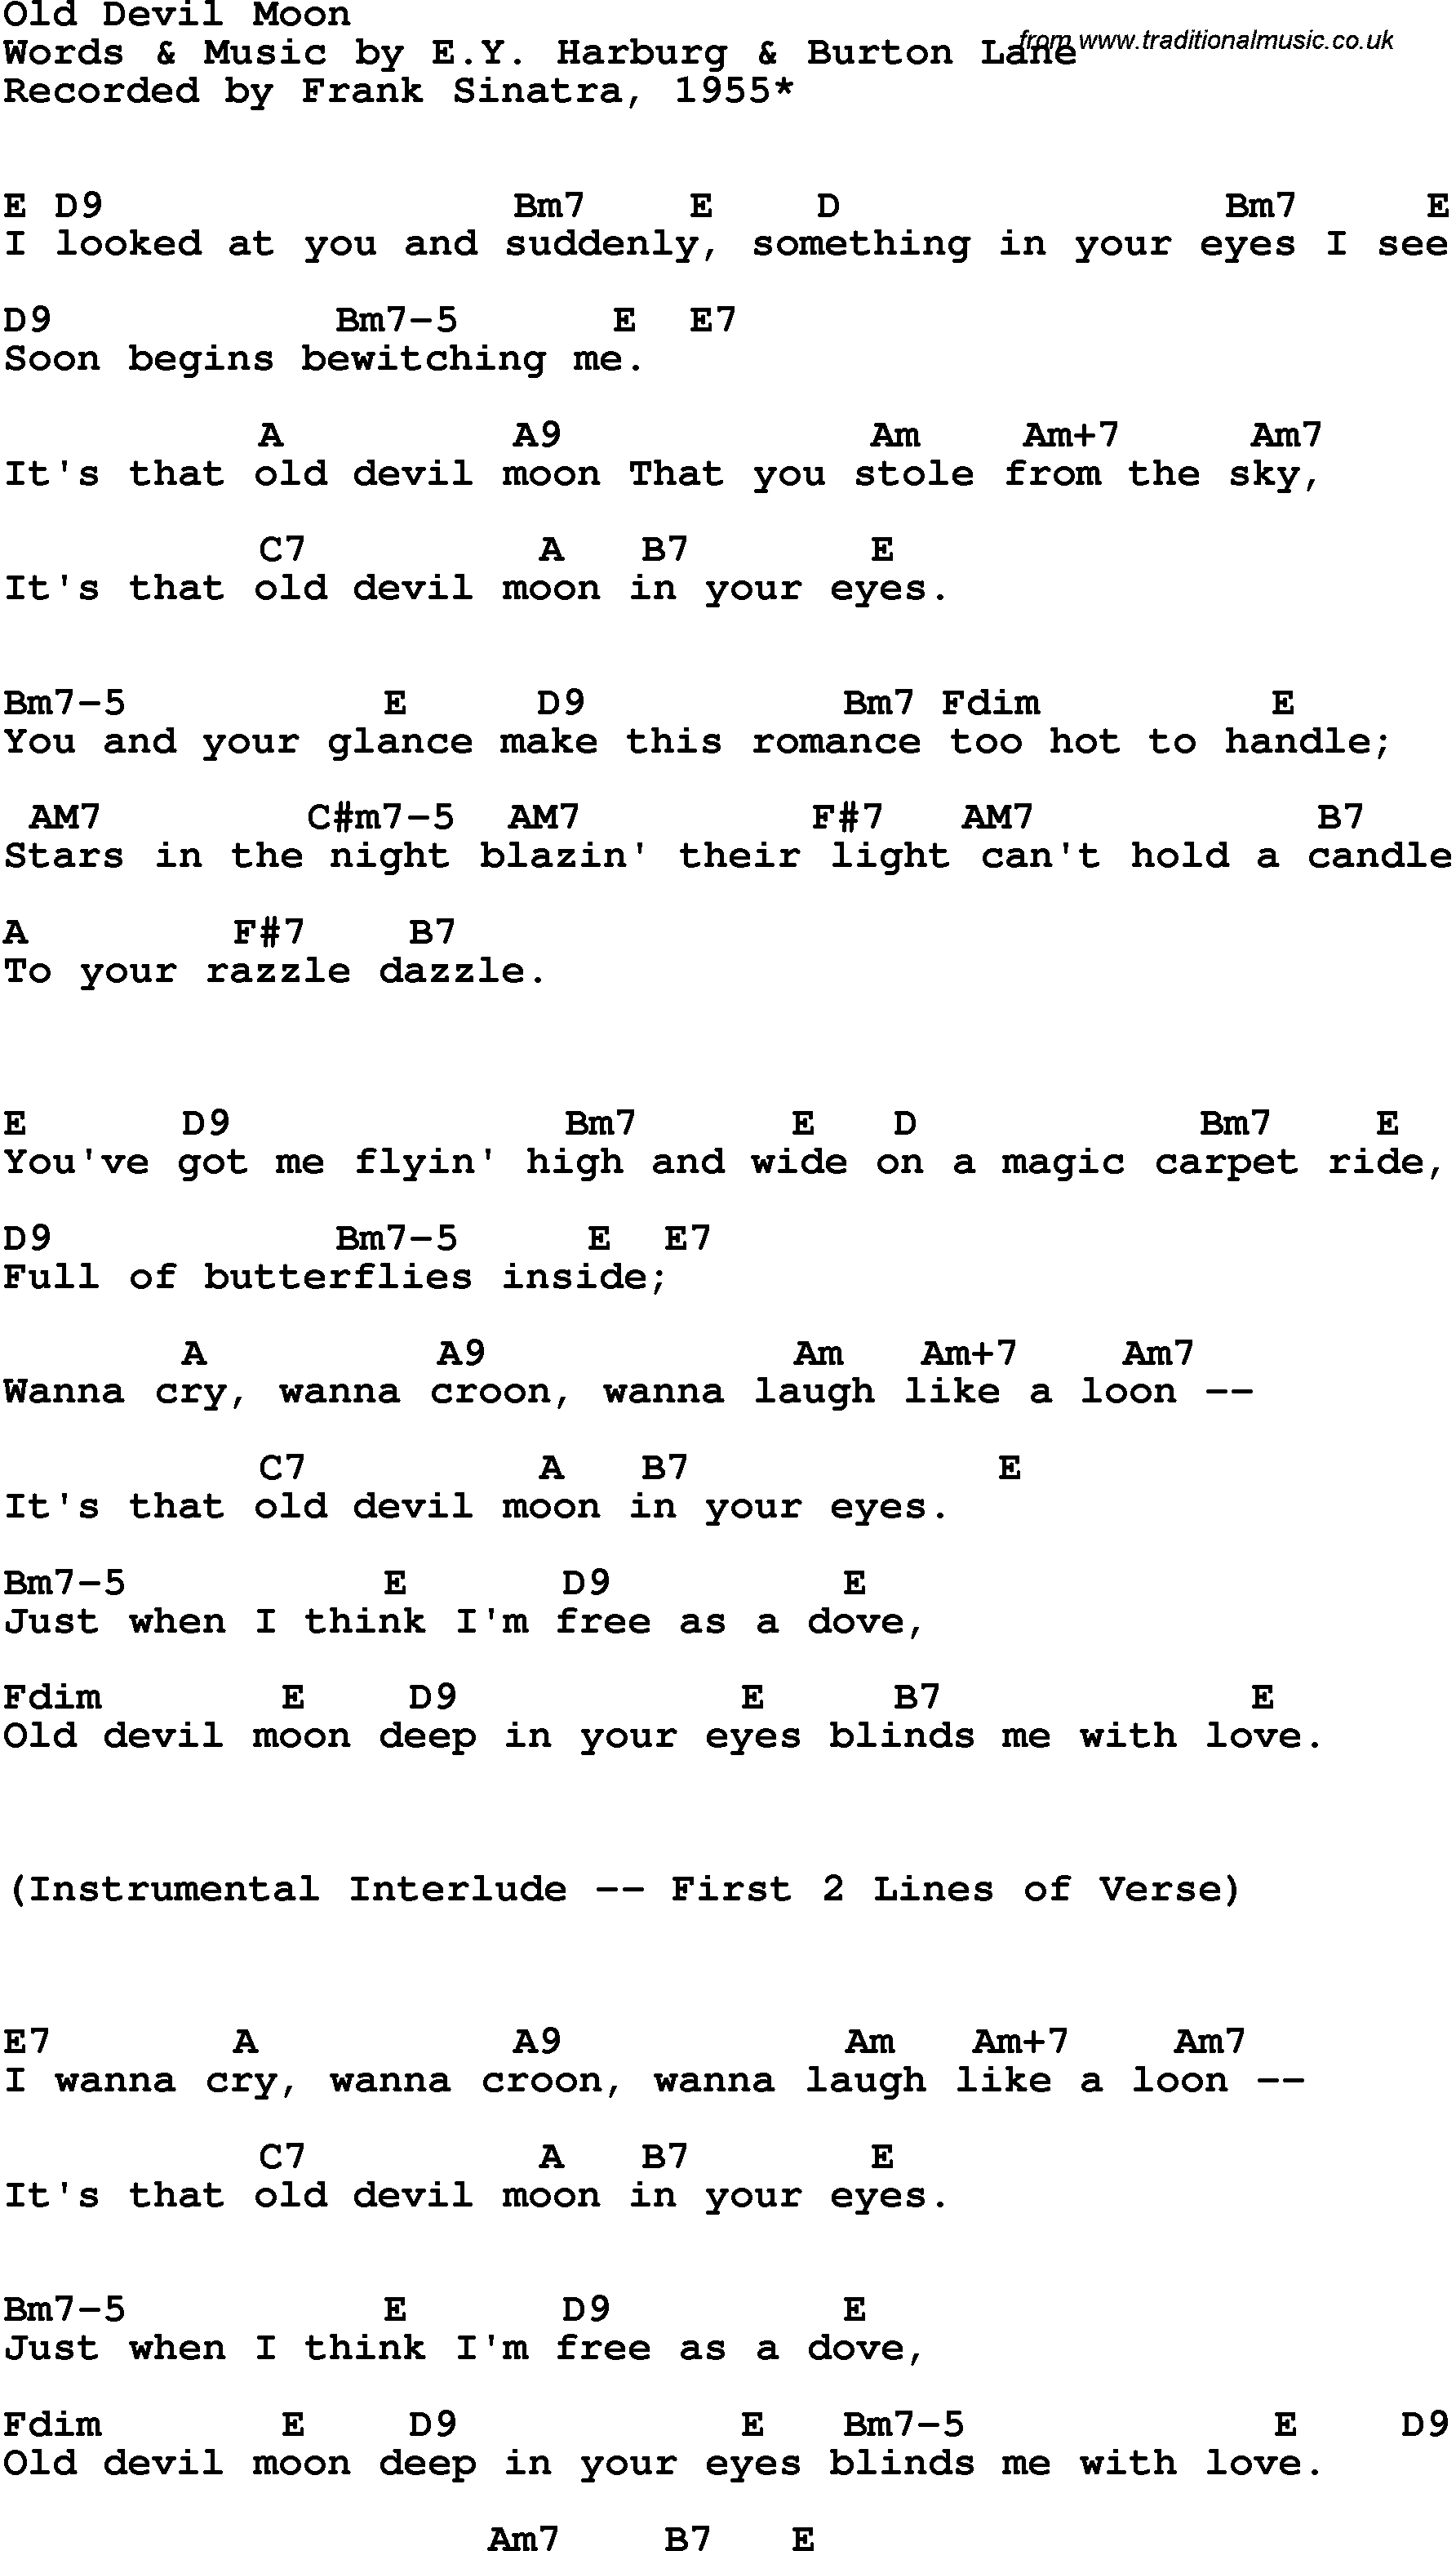 Song Lyrics With Guitar Chords For Old Devil Moon Frank Sinatra 1955